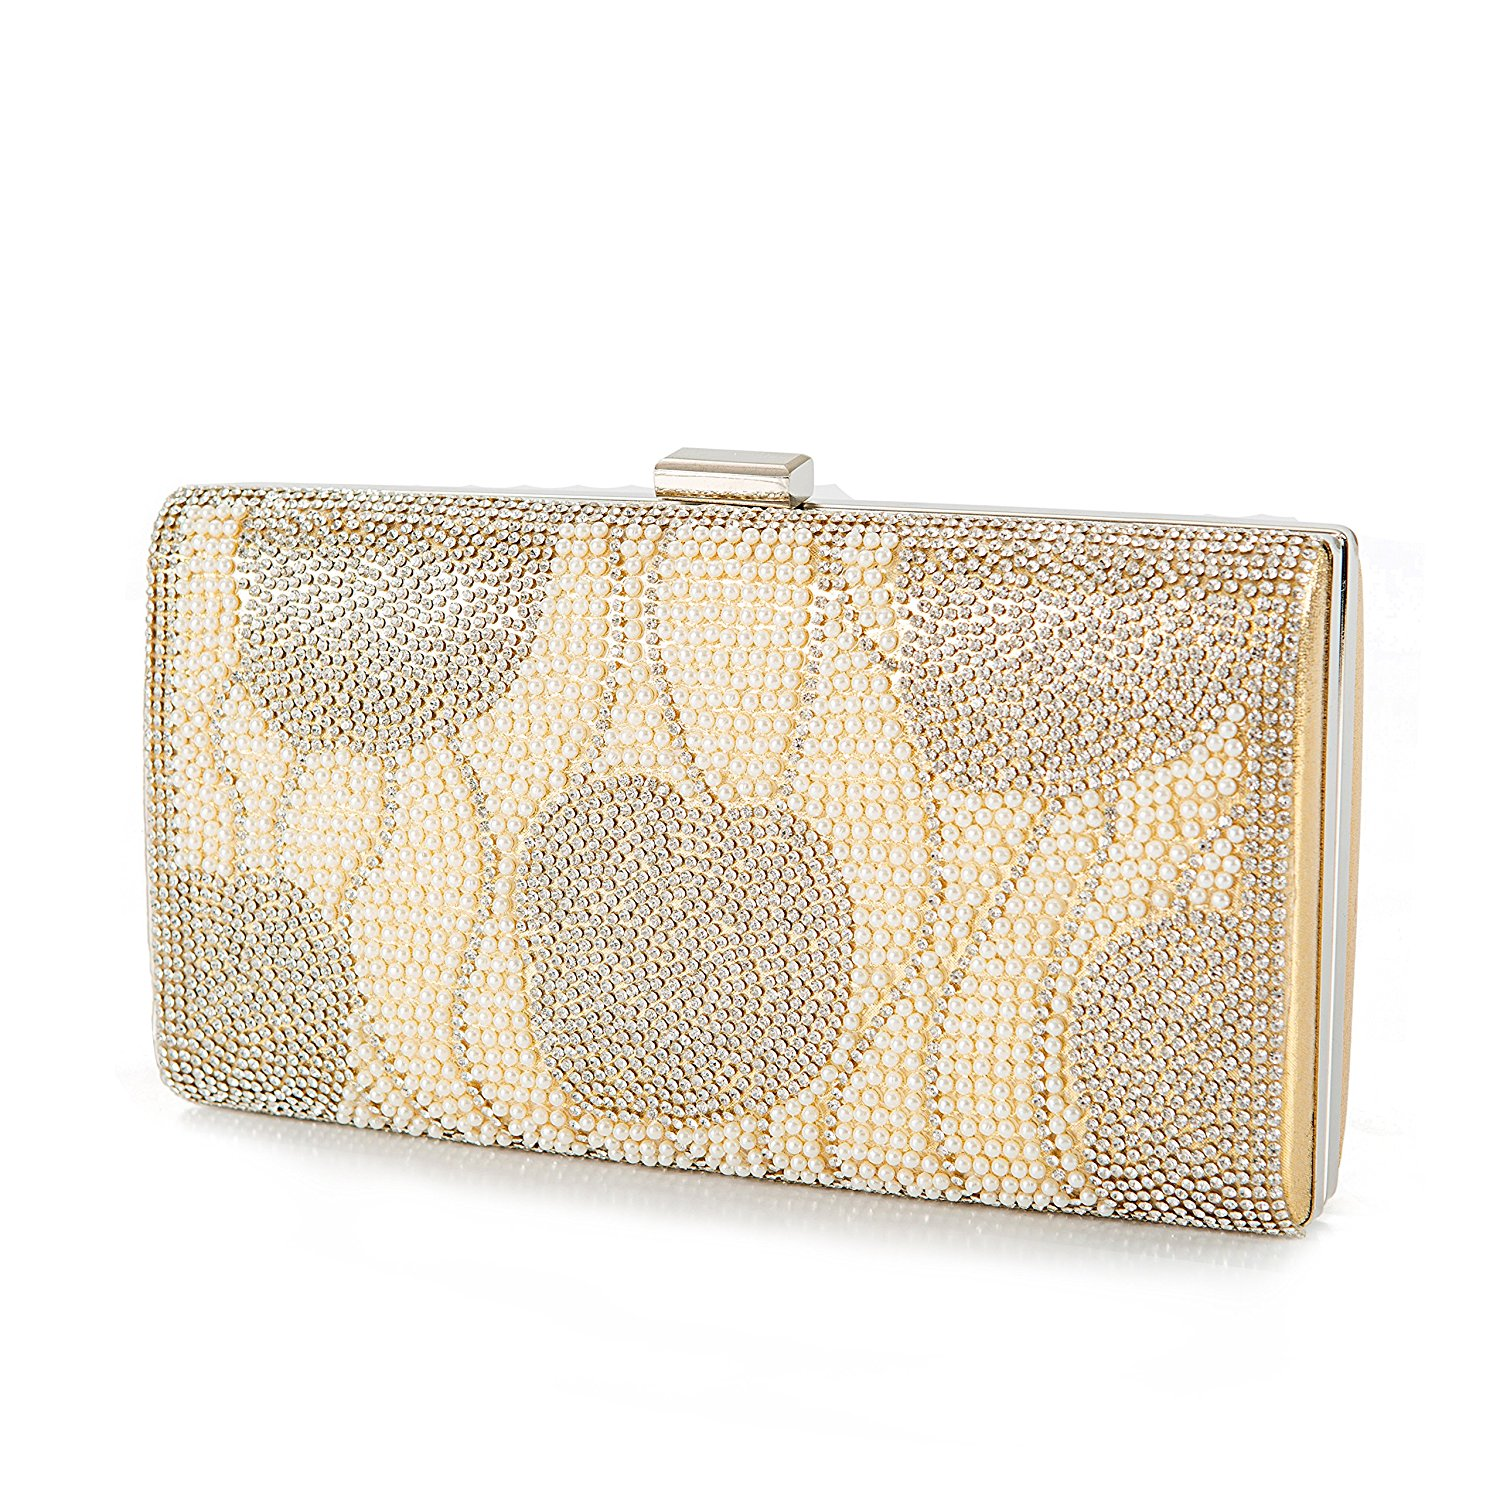 348aad2d41a6 Get Quotations · Champagne Crystal Clutch